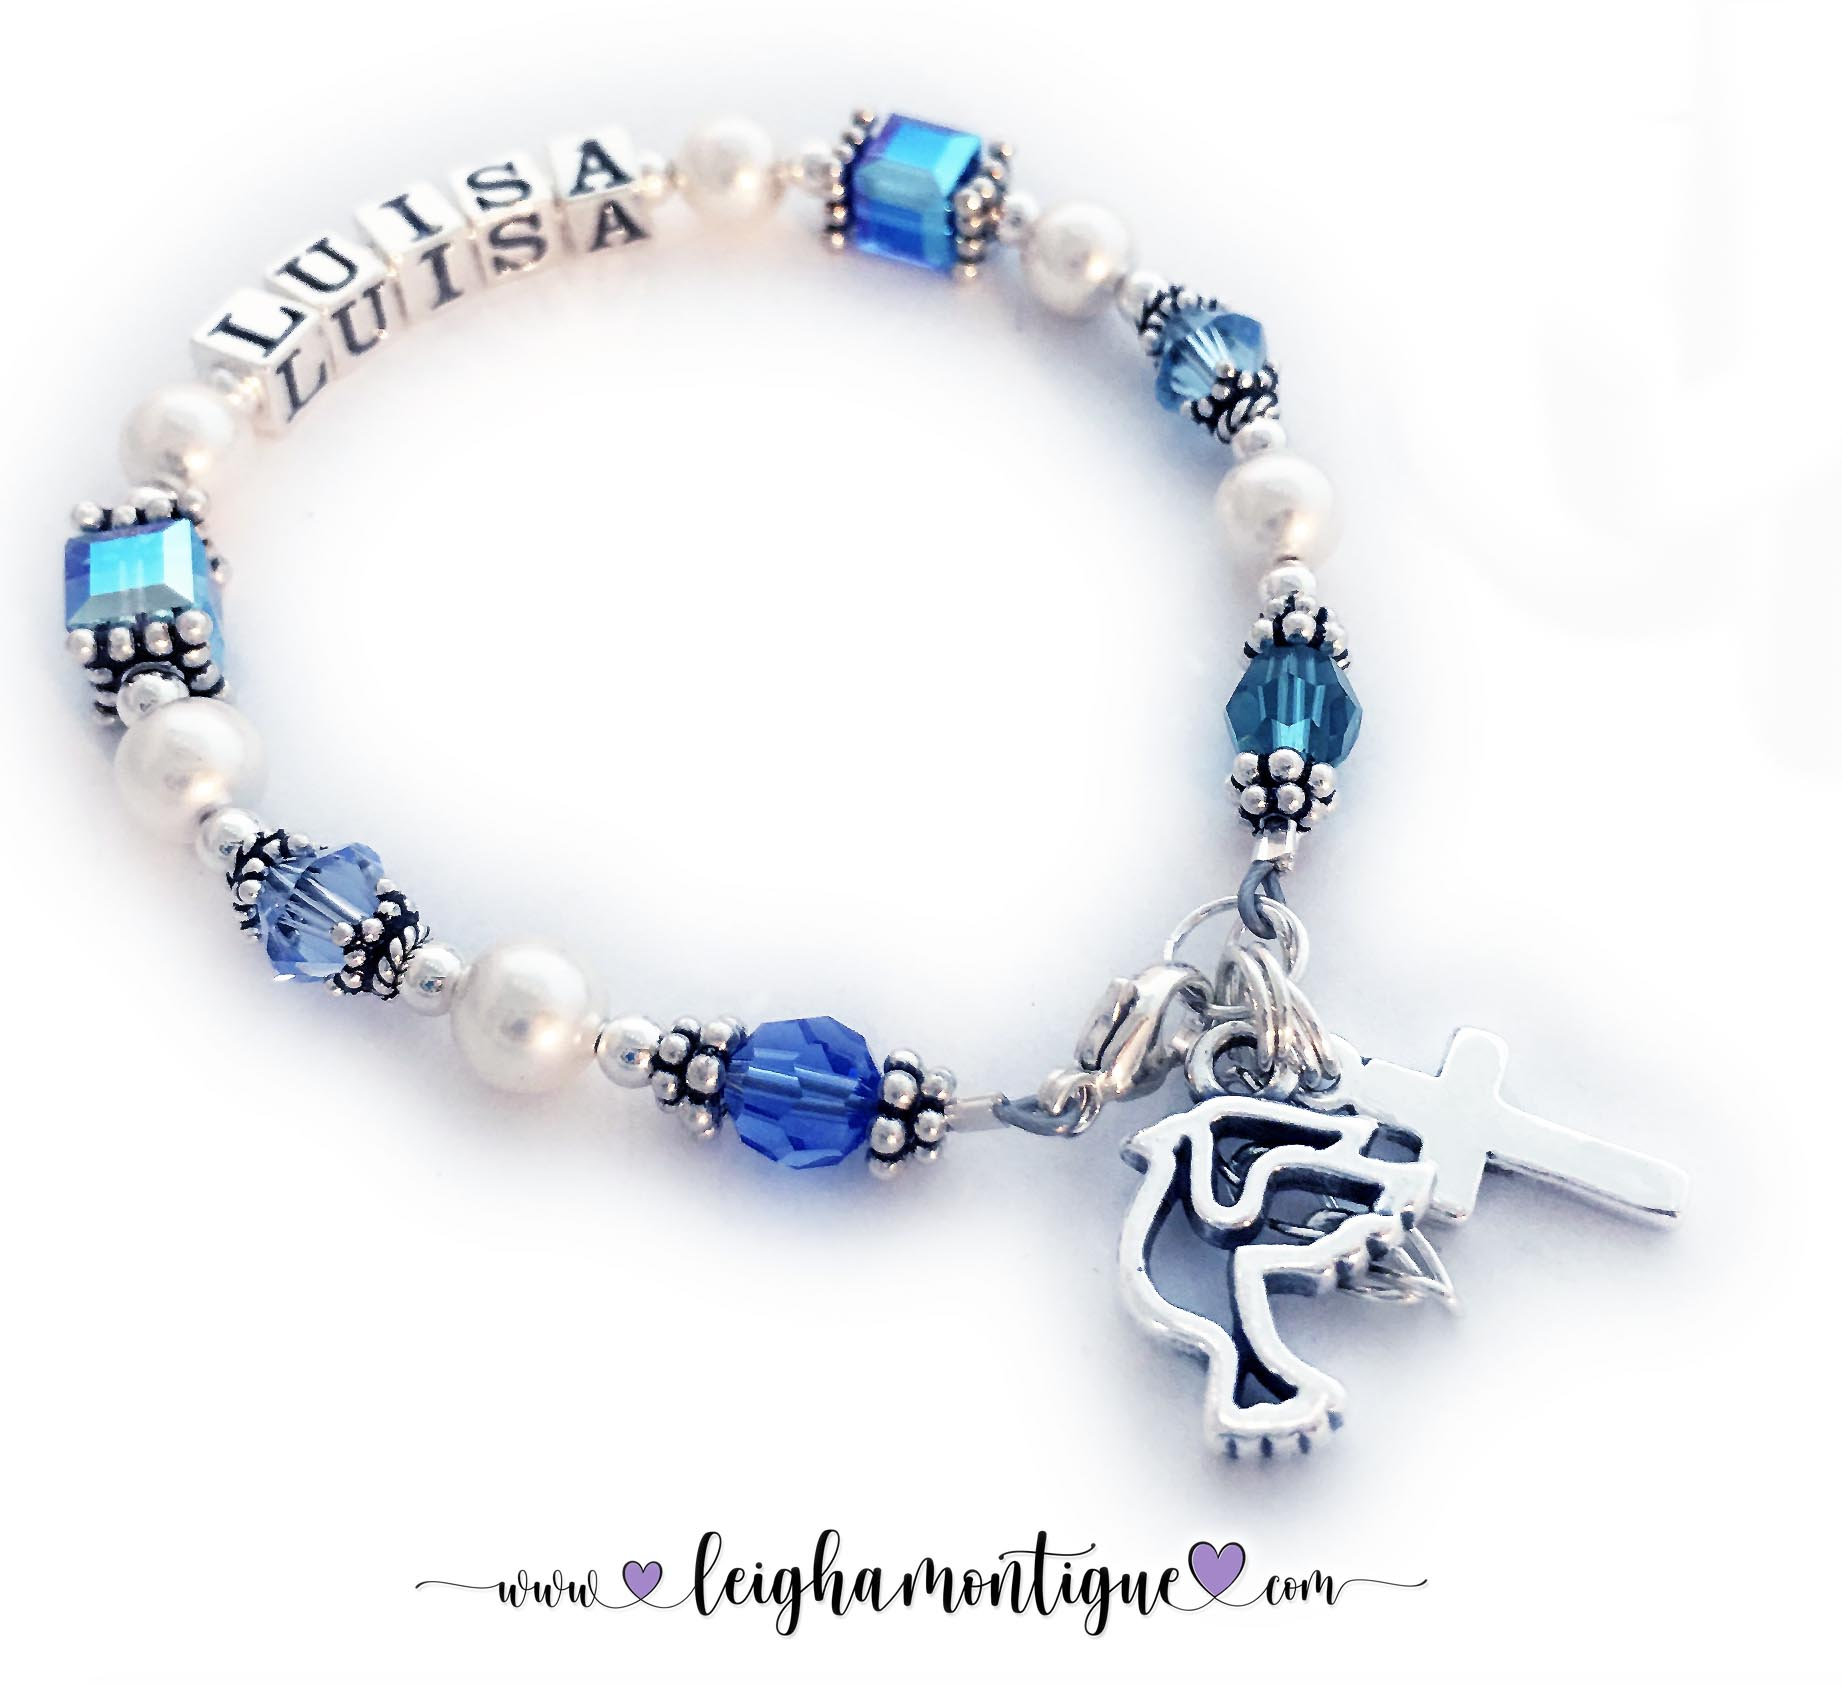 This is a First Communion, First Confession or any special event bracelet with a name and her favorite Swarovski crystal colors. They upgraded to a Heart Lobster claw clasp and added 2 charms: Dove charm and Simple Cross Charm.